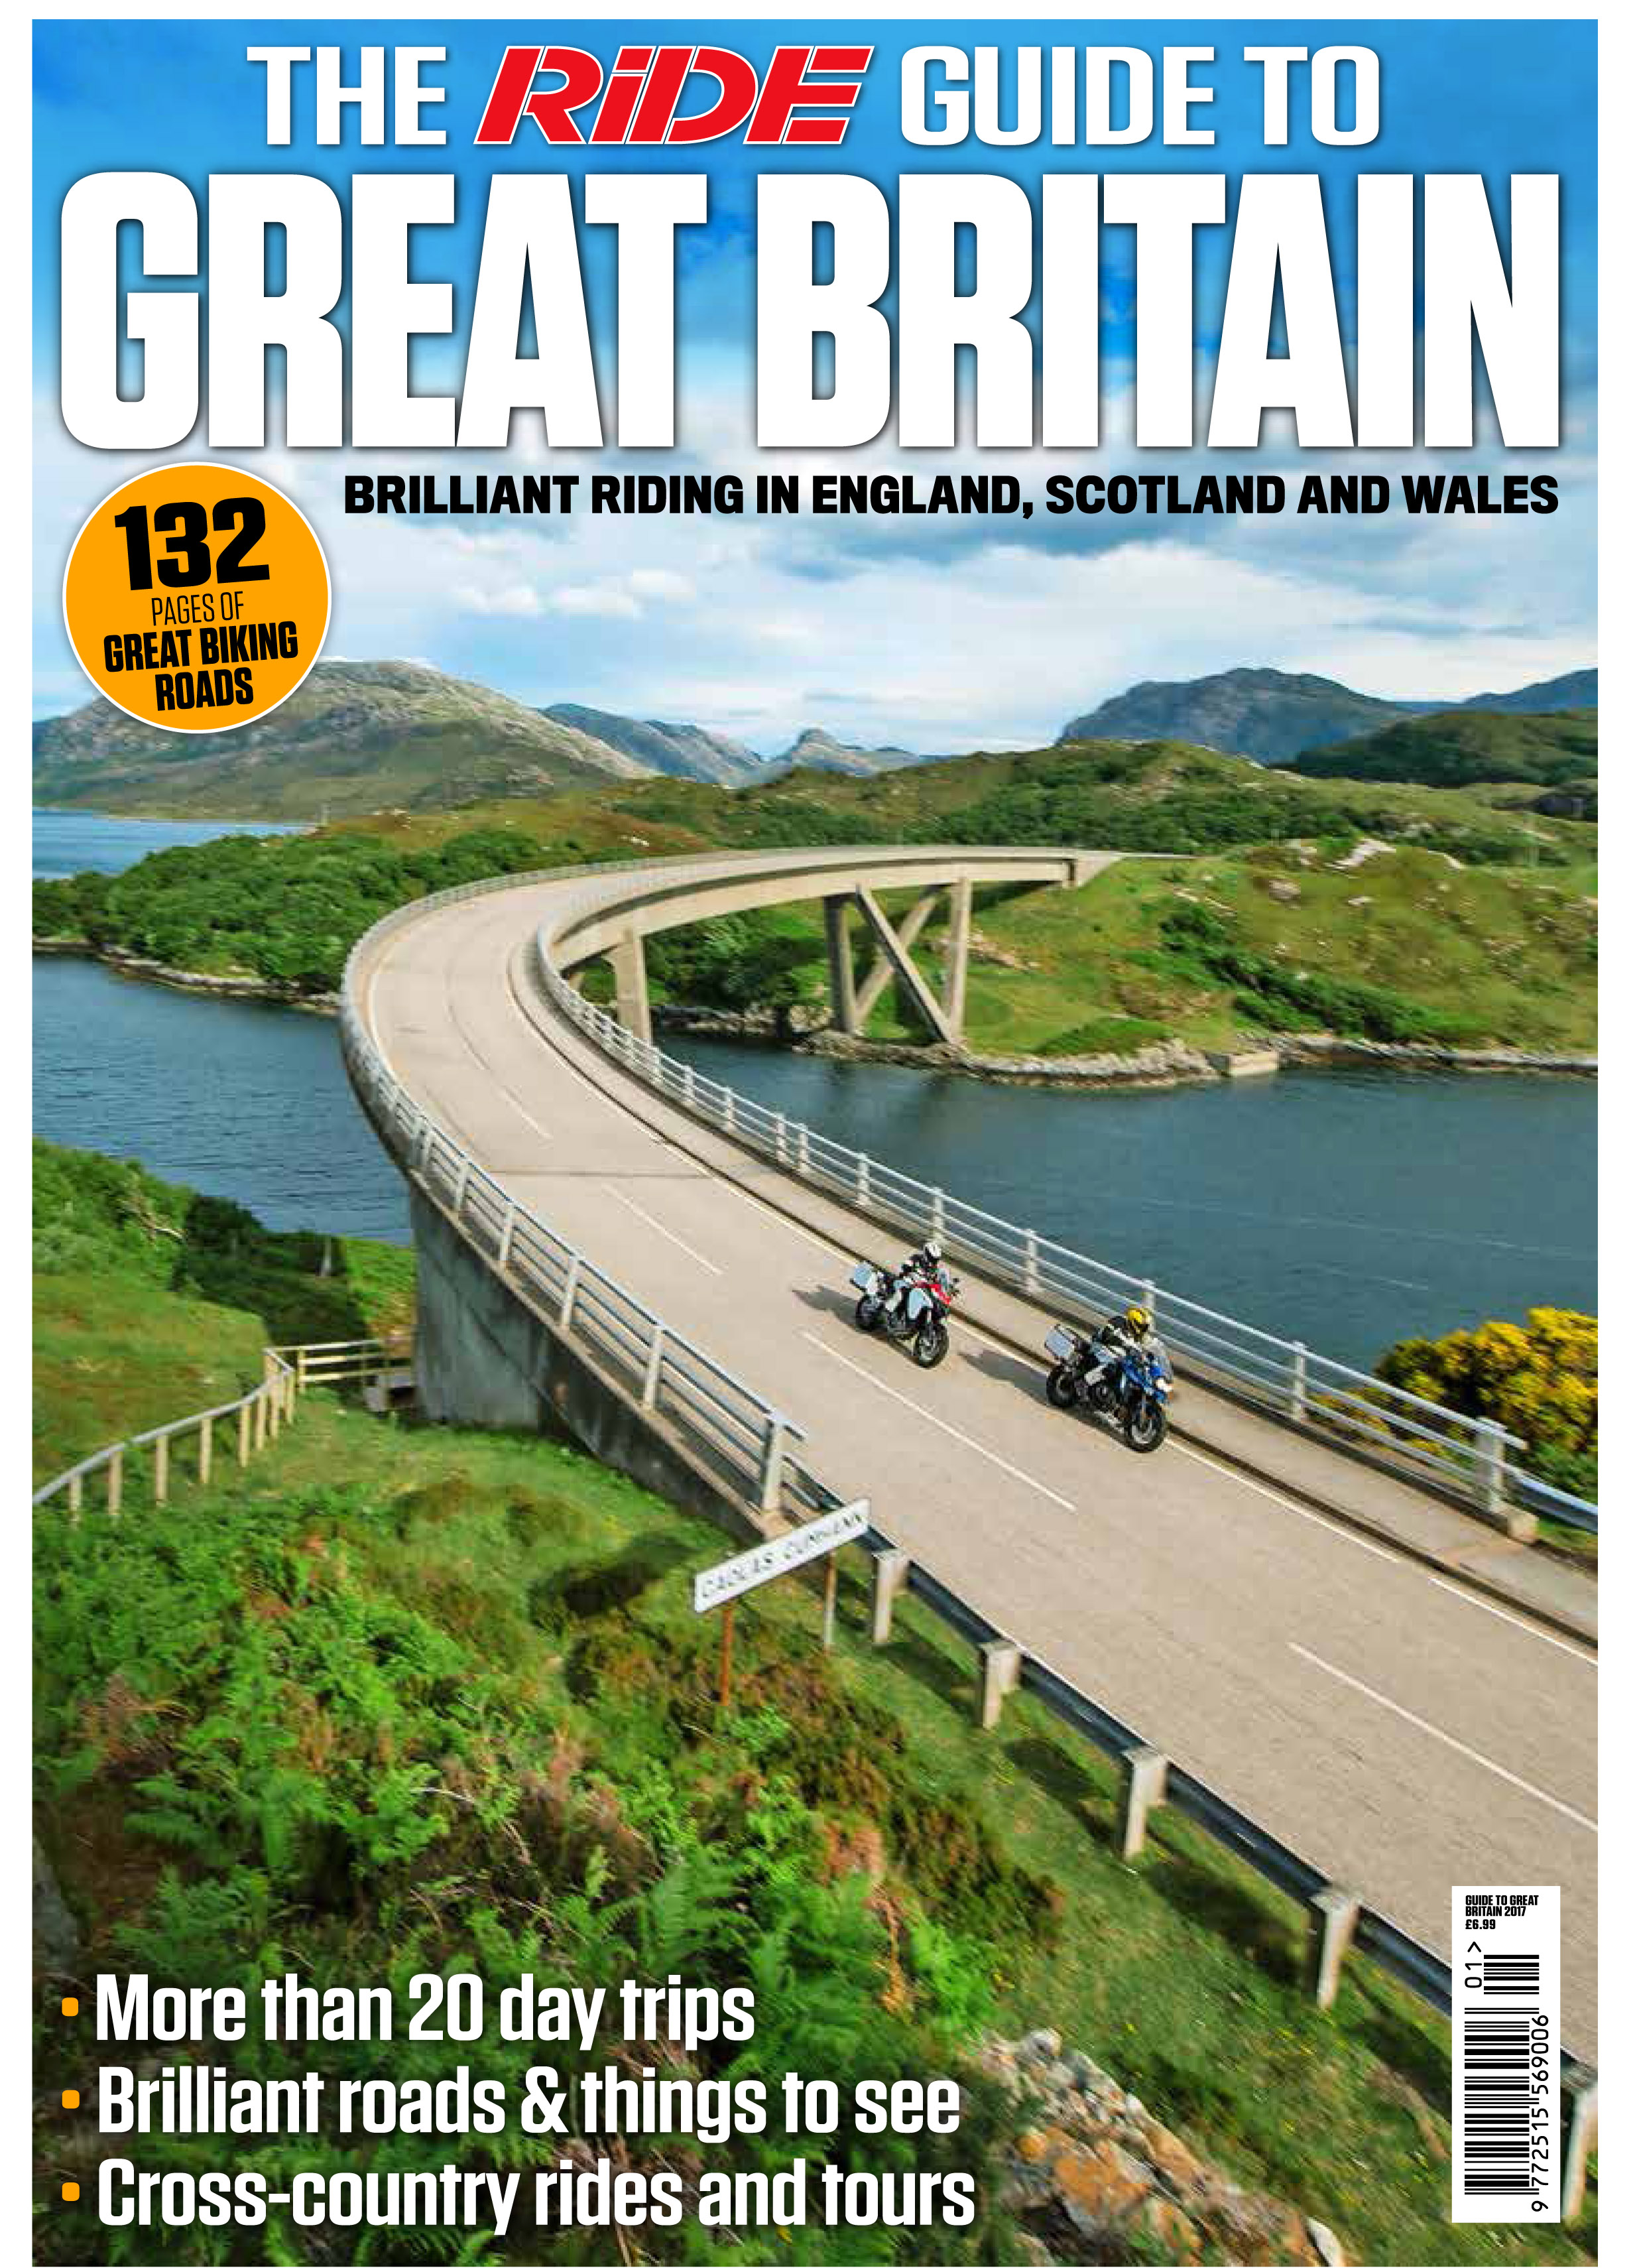 RiDE Guide to Great Britain